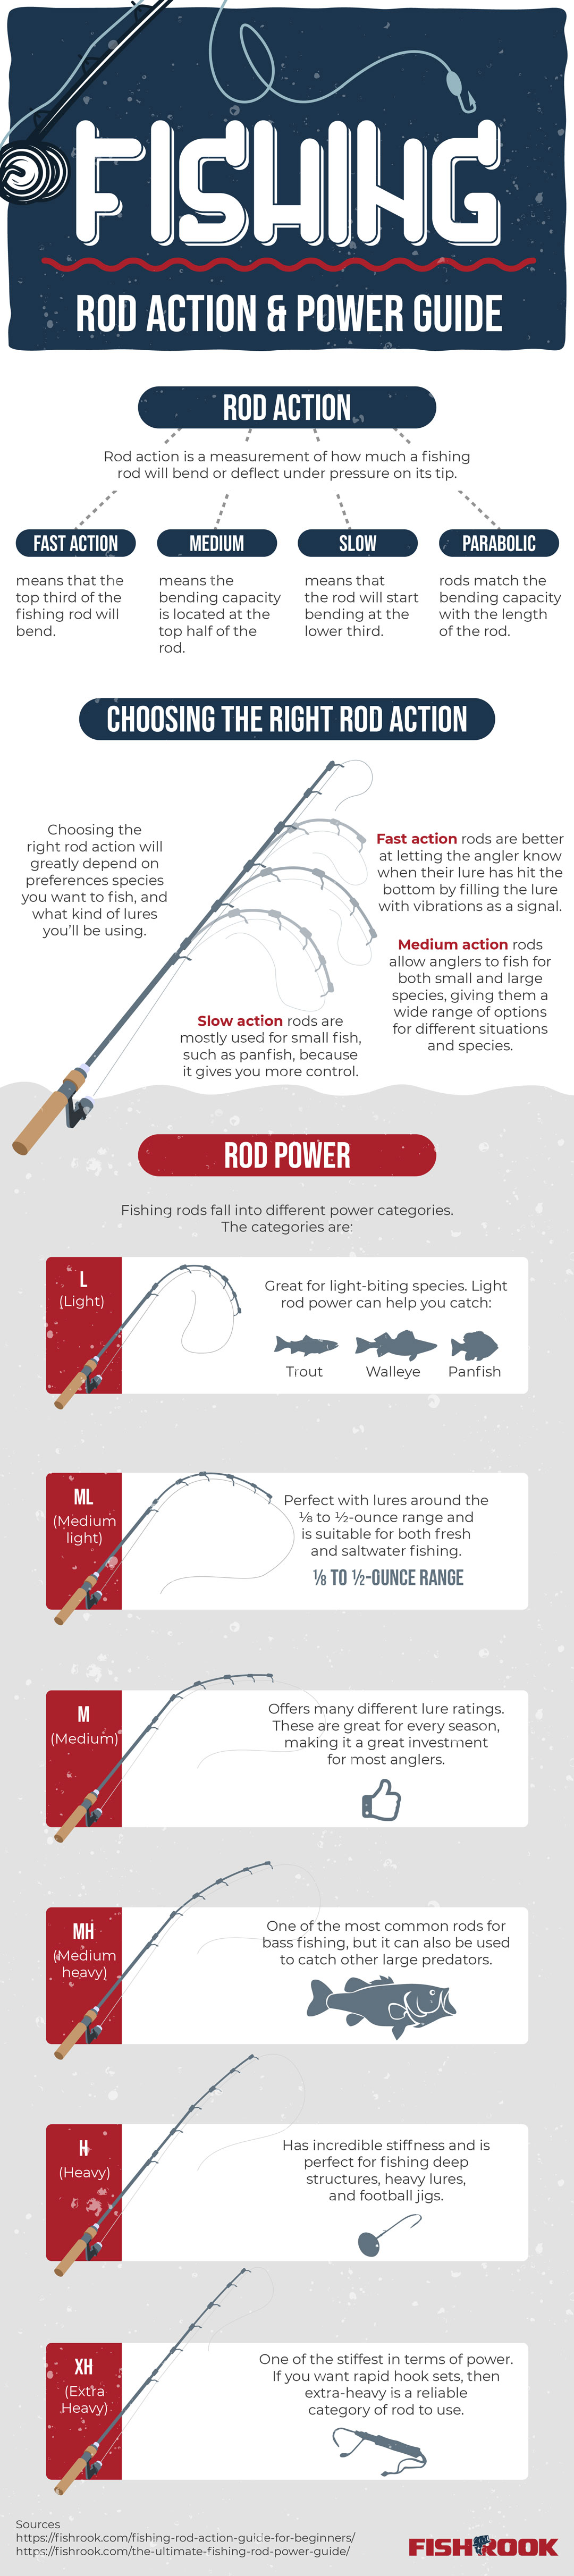 Fishing Rod Action vs Power Infographic